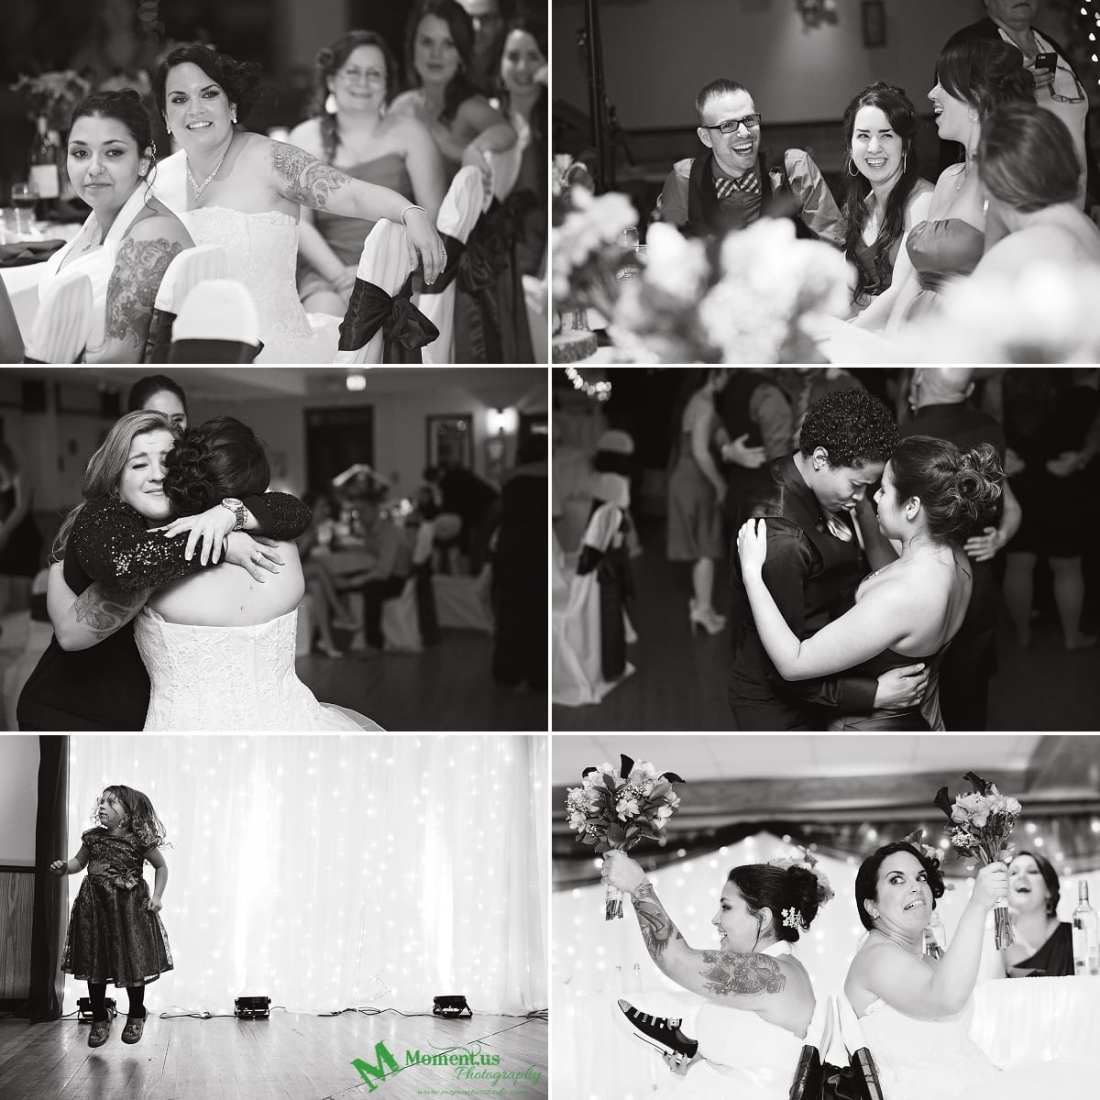 Alexandria wedding - wedding guests dancing